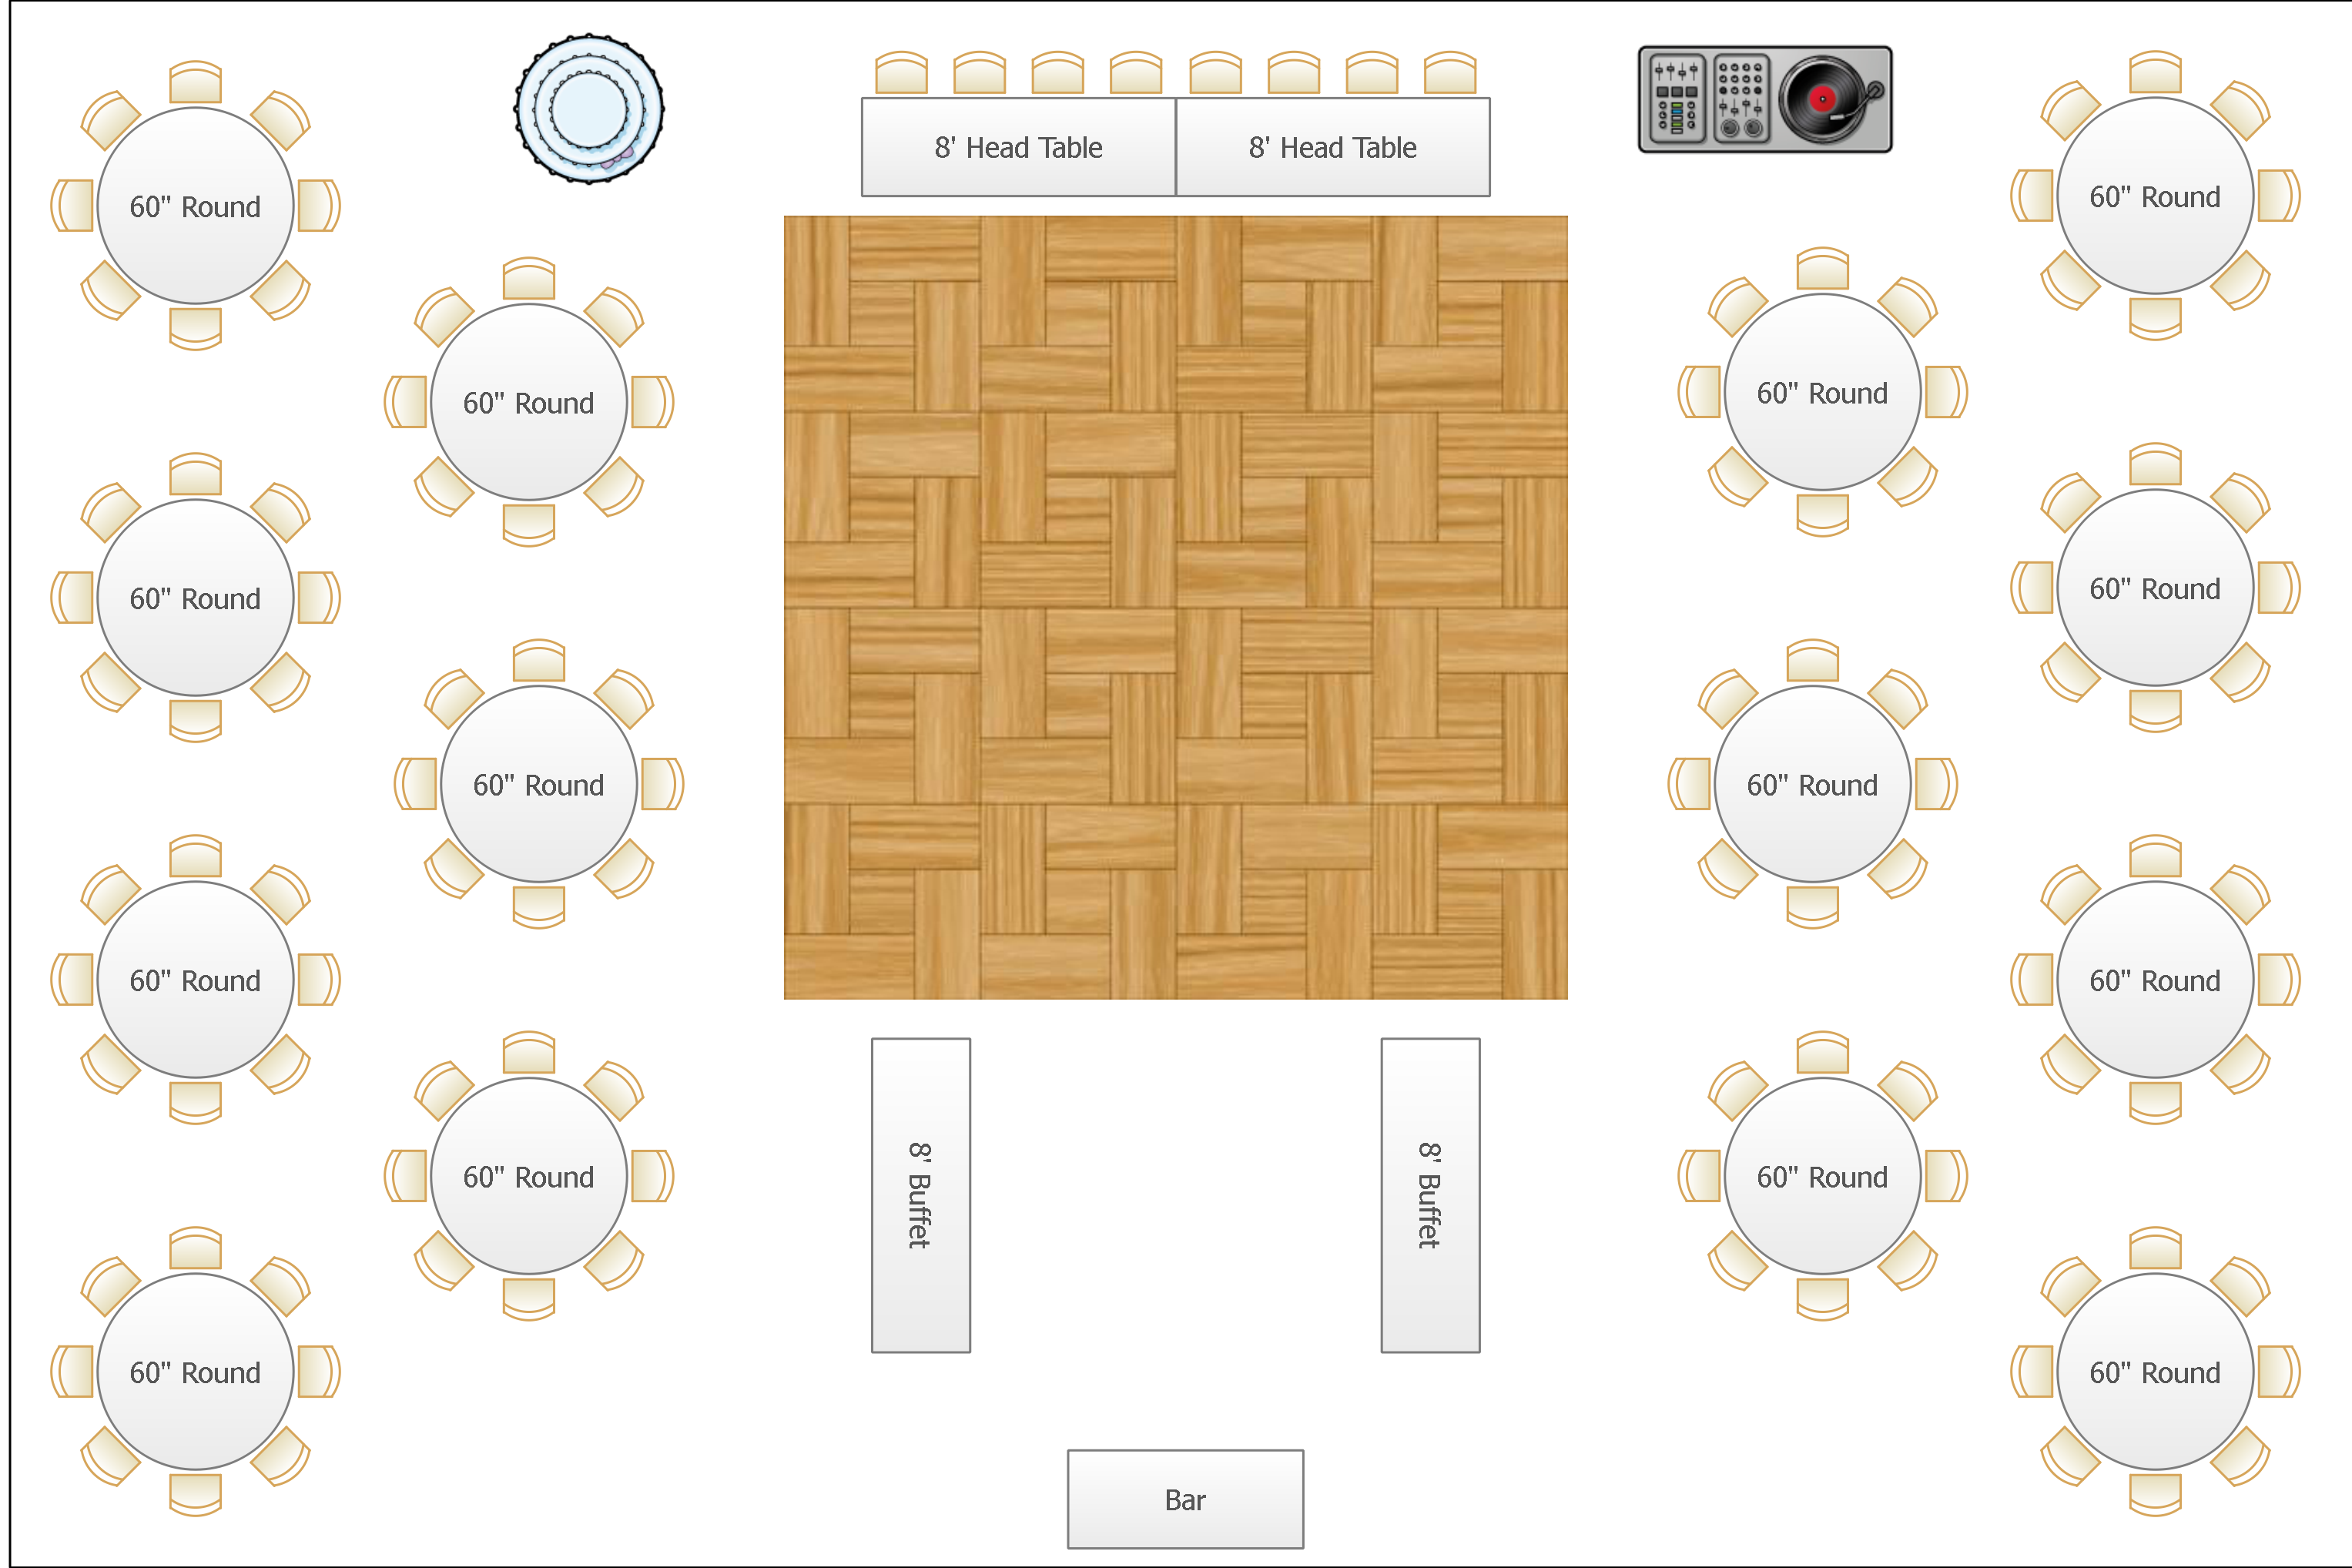 Wedding seating at tables google search weddings for Wedding floor plan